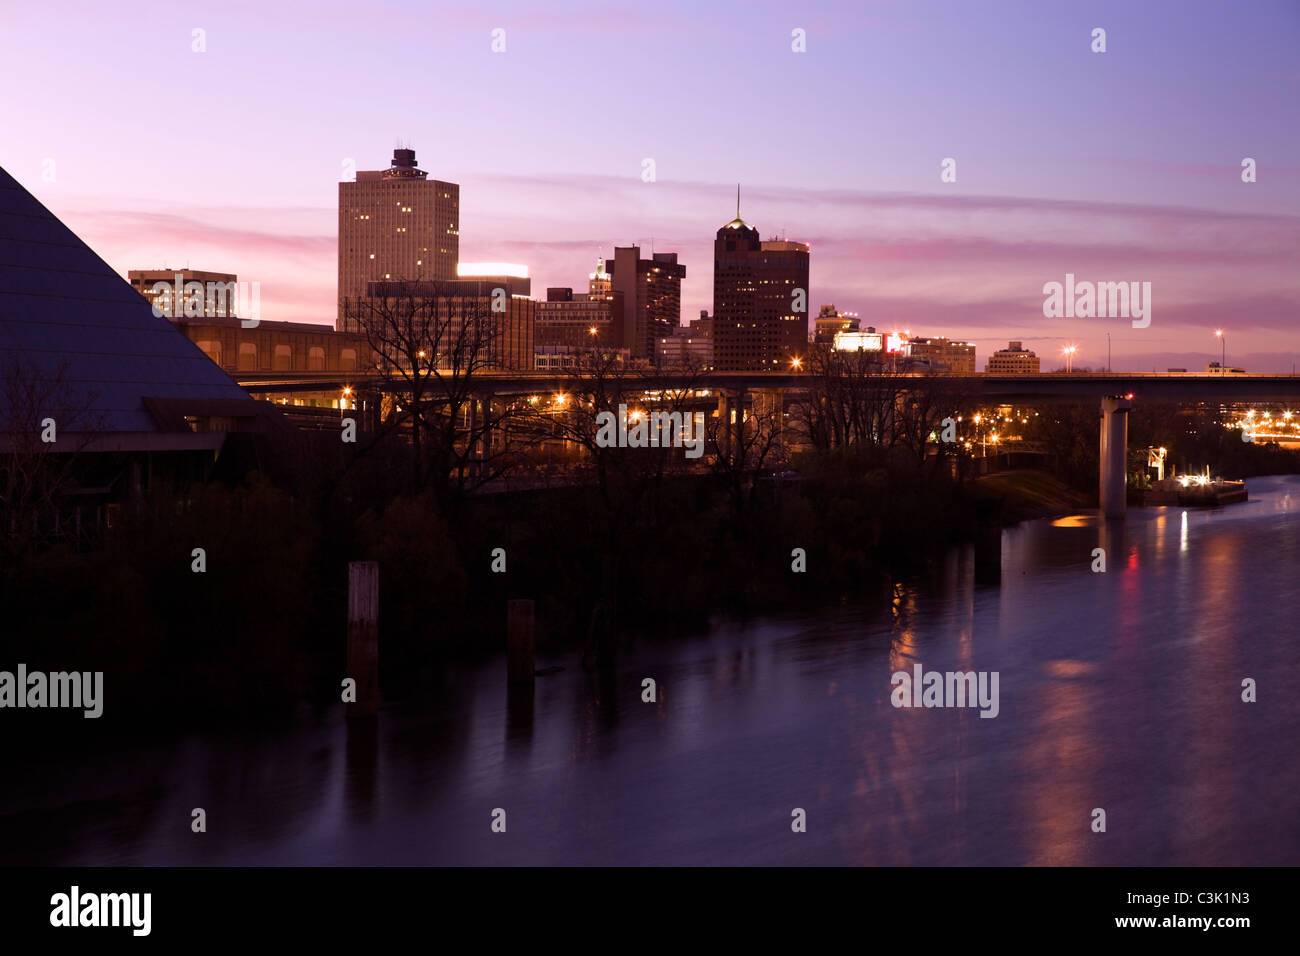 Downtown of Memphis, Tennessee, USA - Stock Image